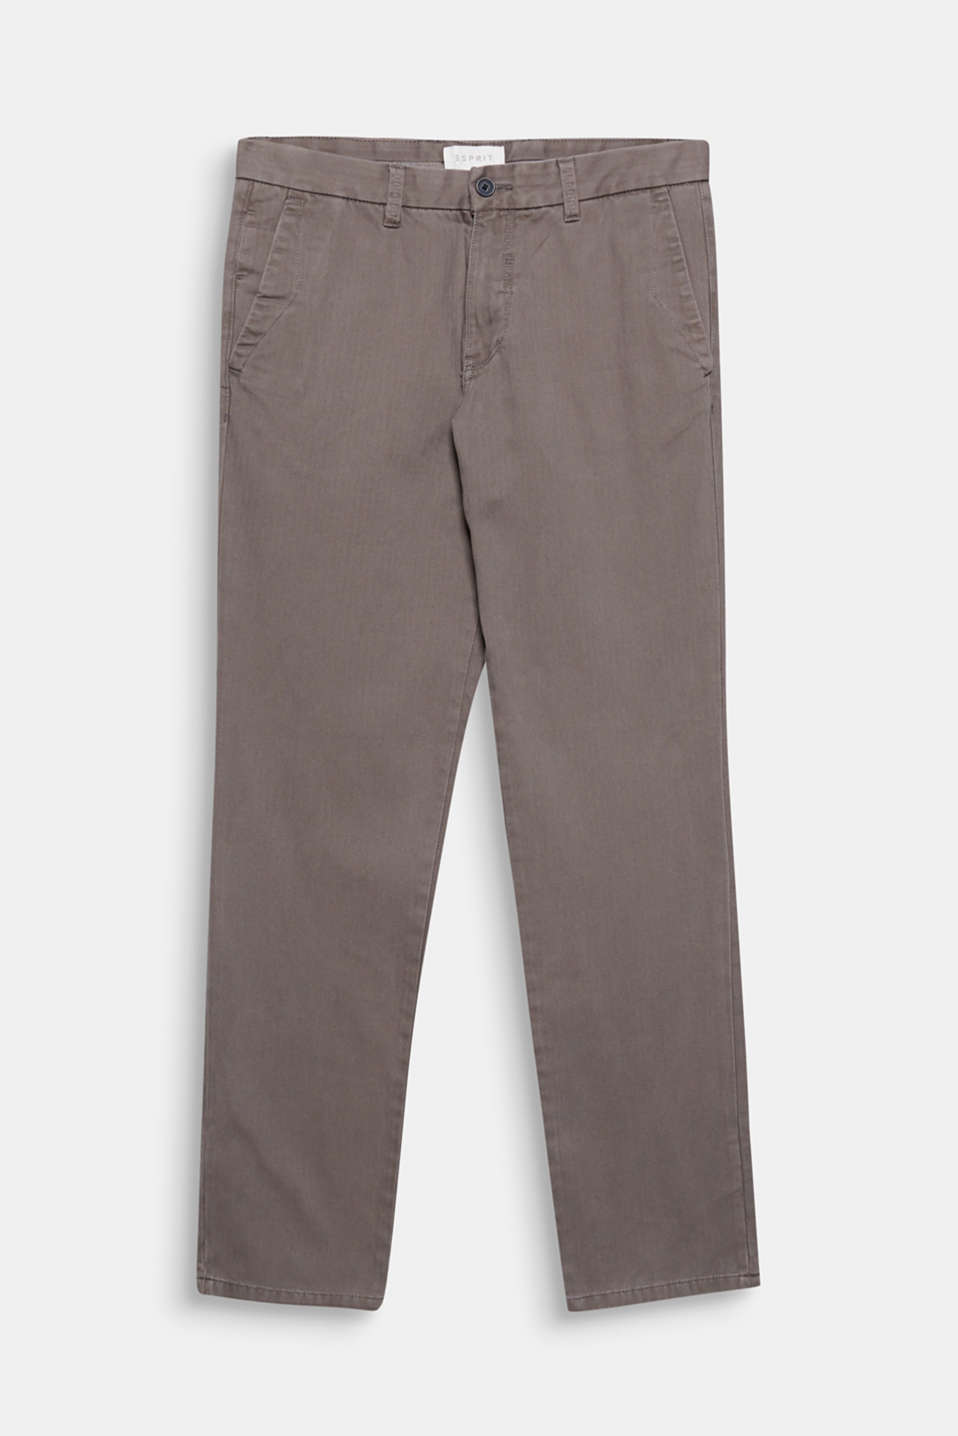 For business or everyday wear: These cotton trousers feature a fine herringbone pattern and a soft texture.